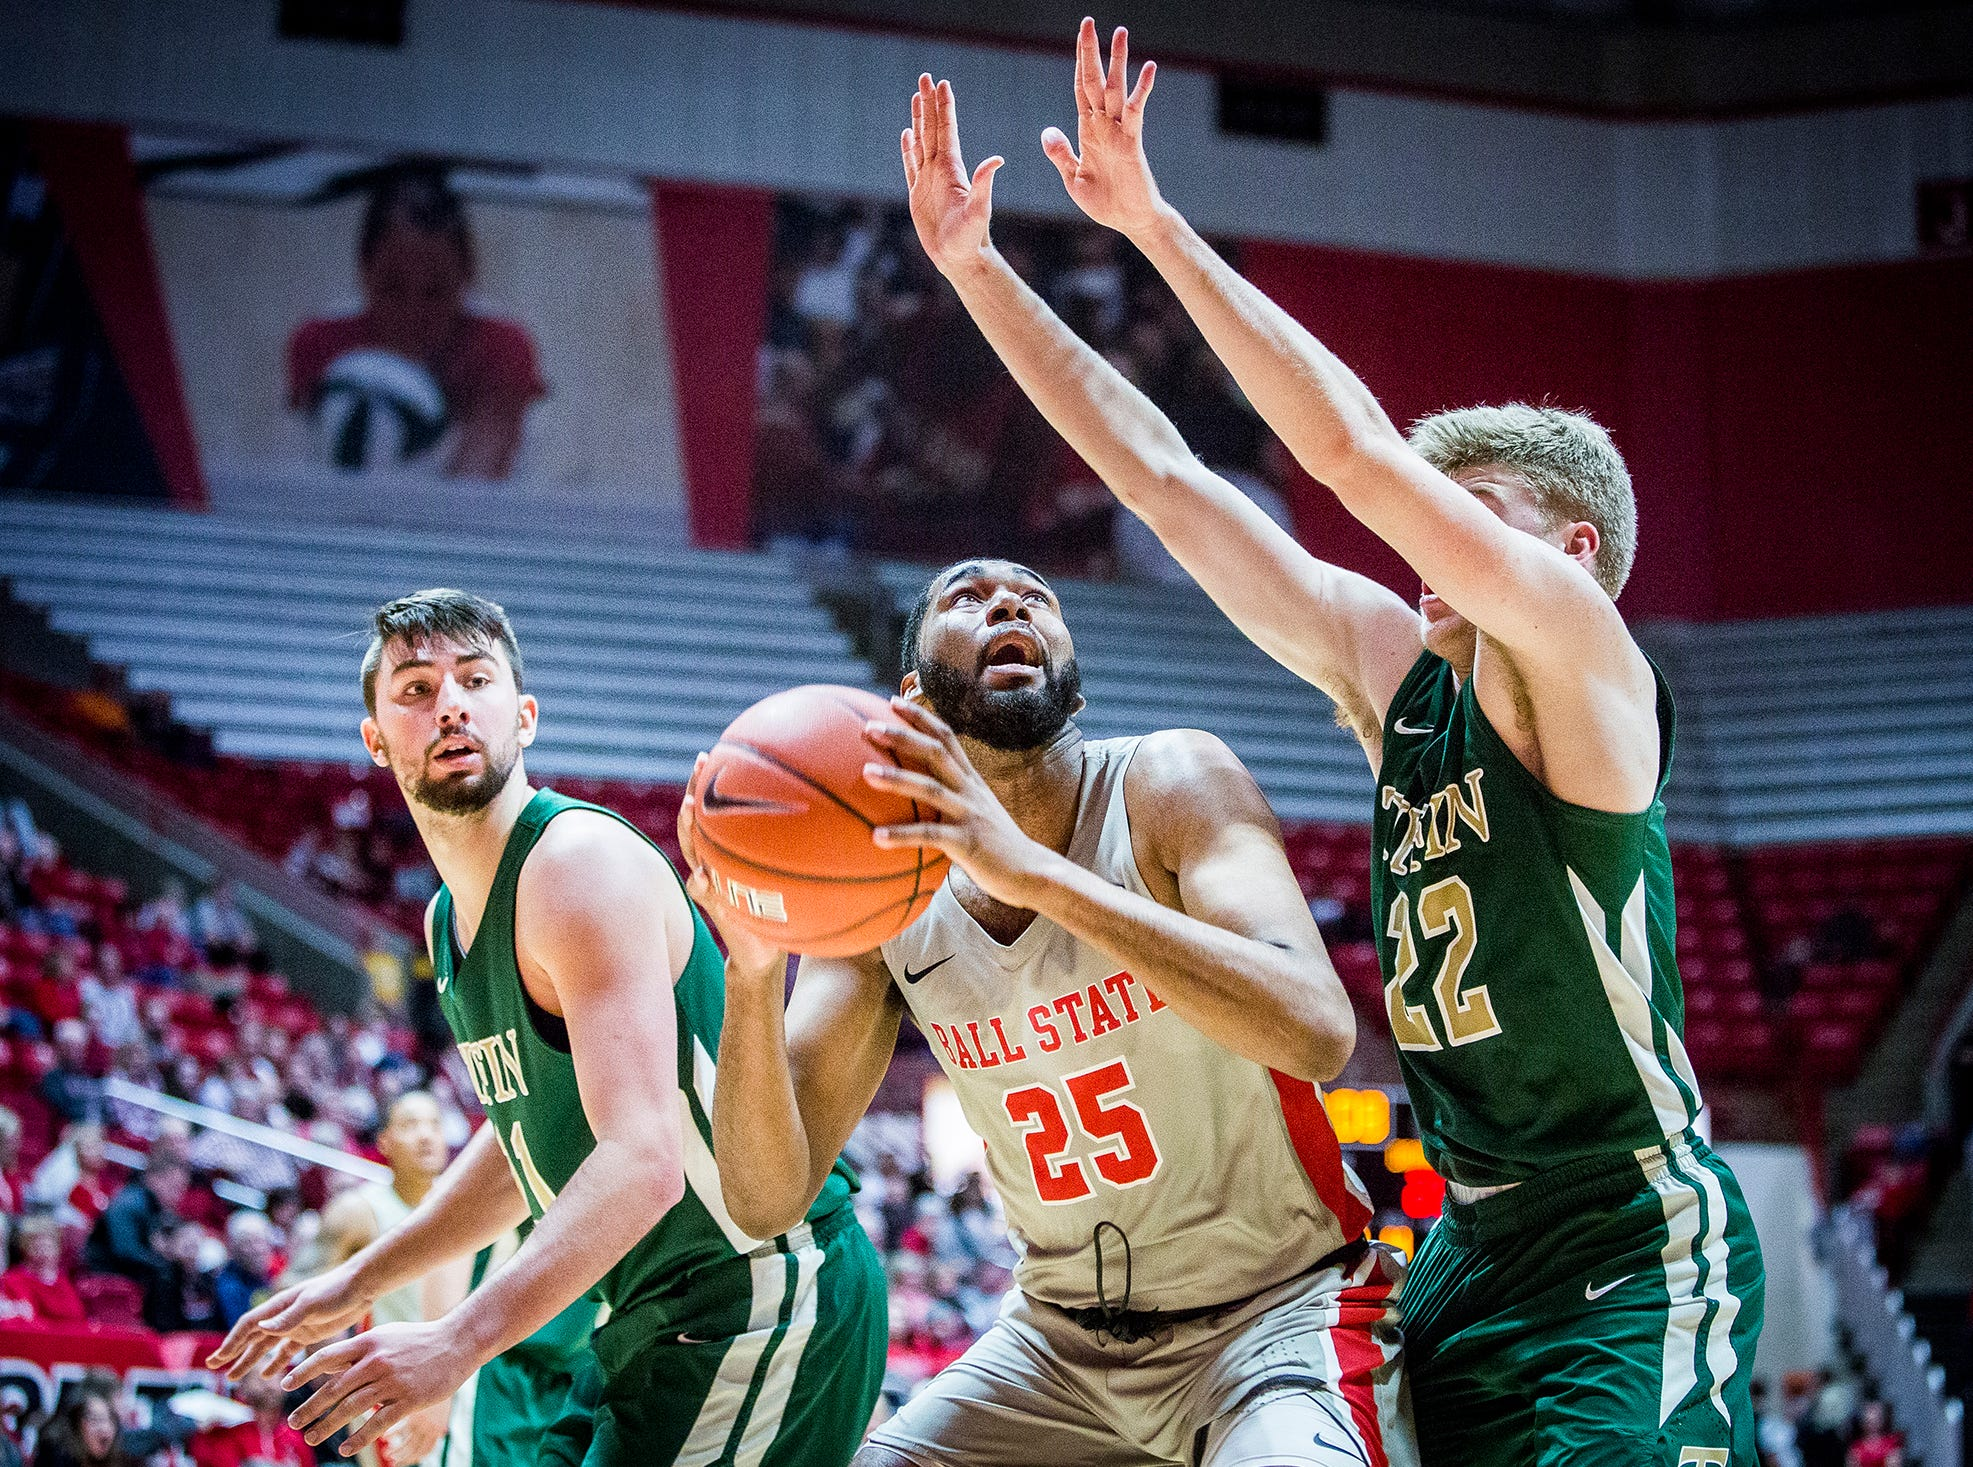 Ball State's Tahjai Teague looks to shoot past Tiffin's defense during their game at Worthen Arena Tuesday, Nov. 27, 2018.